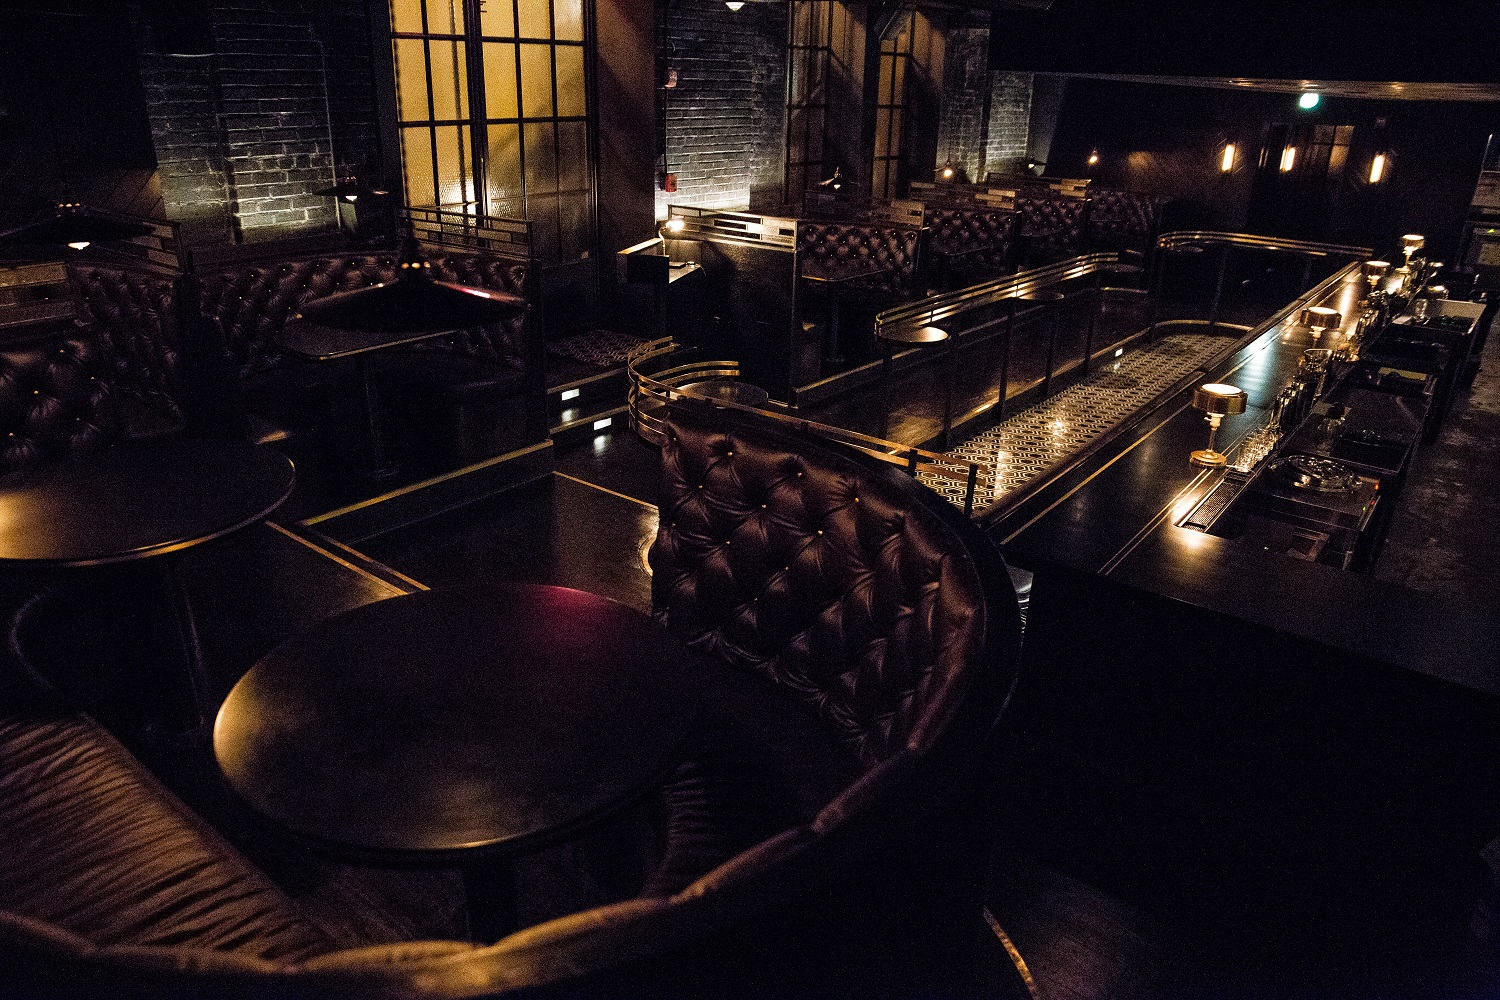 studio-saint-bars-and-restaurants-denson-washington-dc-7